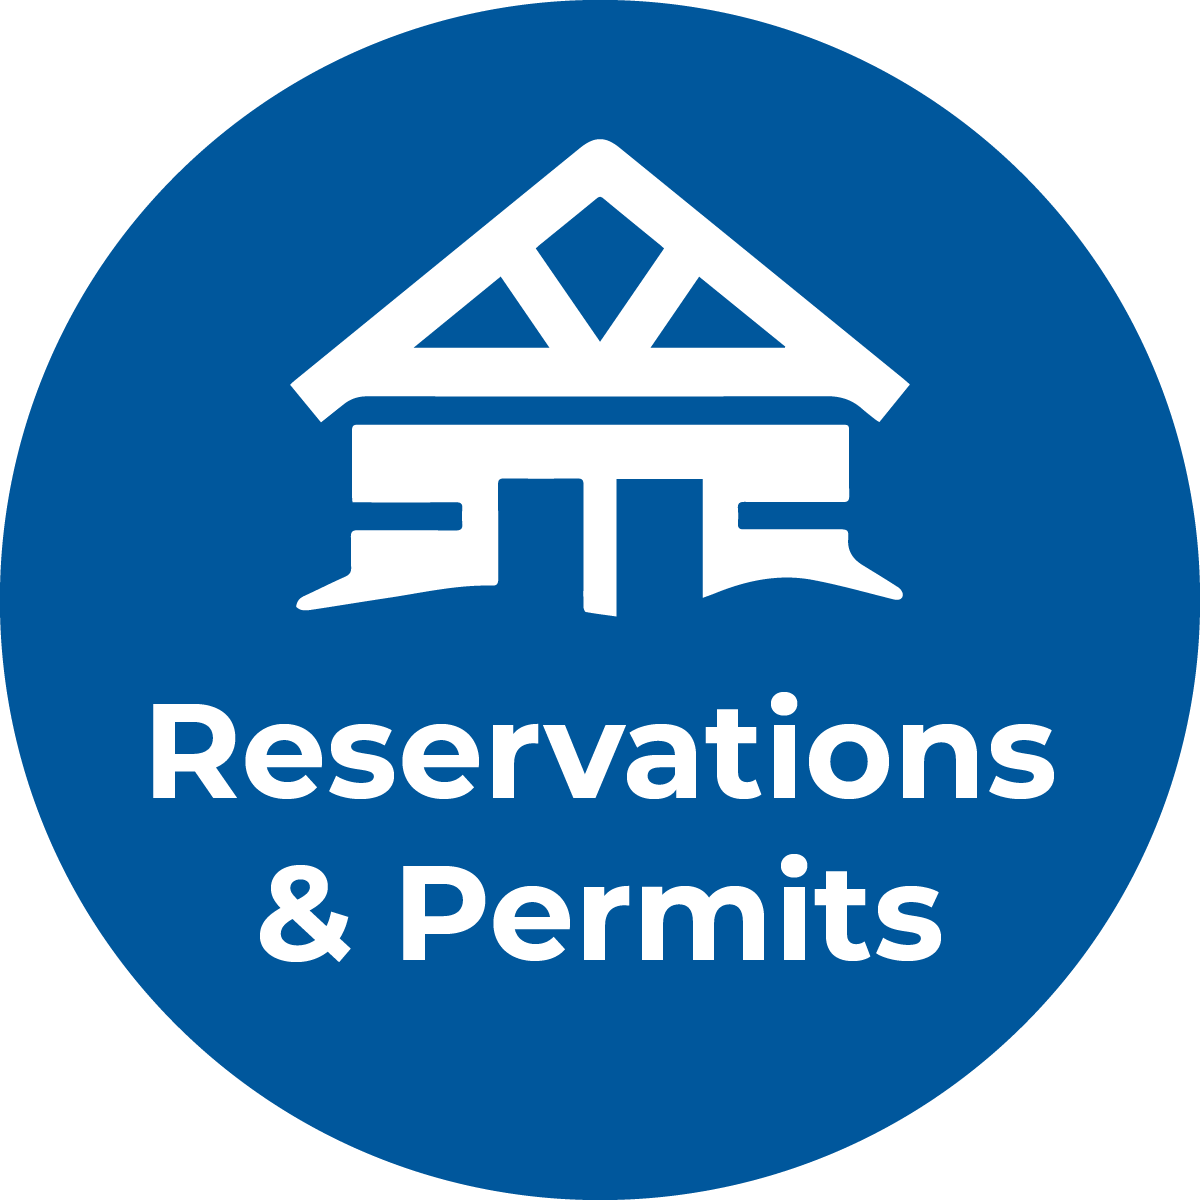 Reservations and Permits